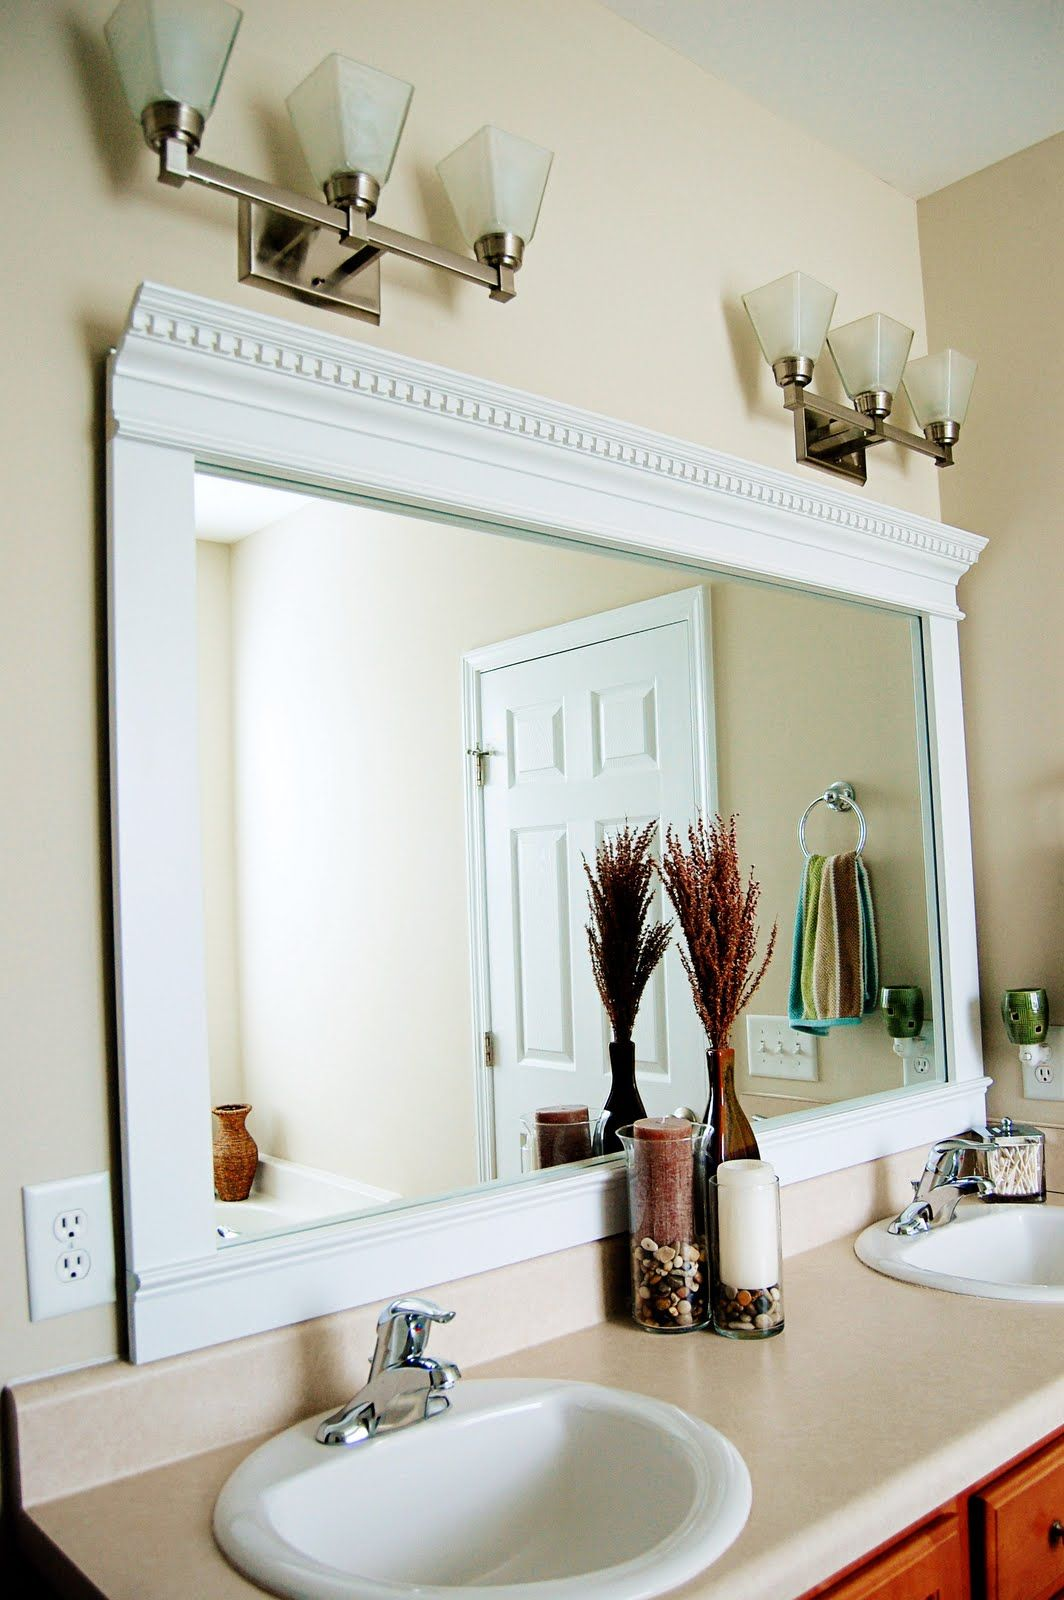 how to frame a bathroom mirror with molding | Allcanwear.org